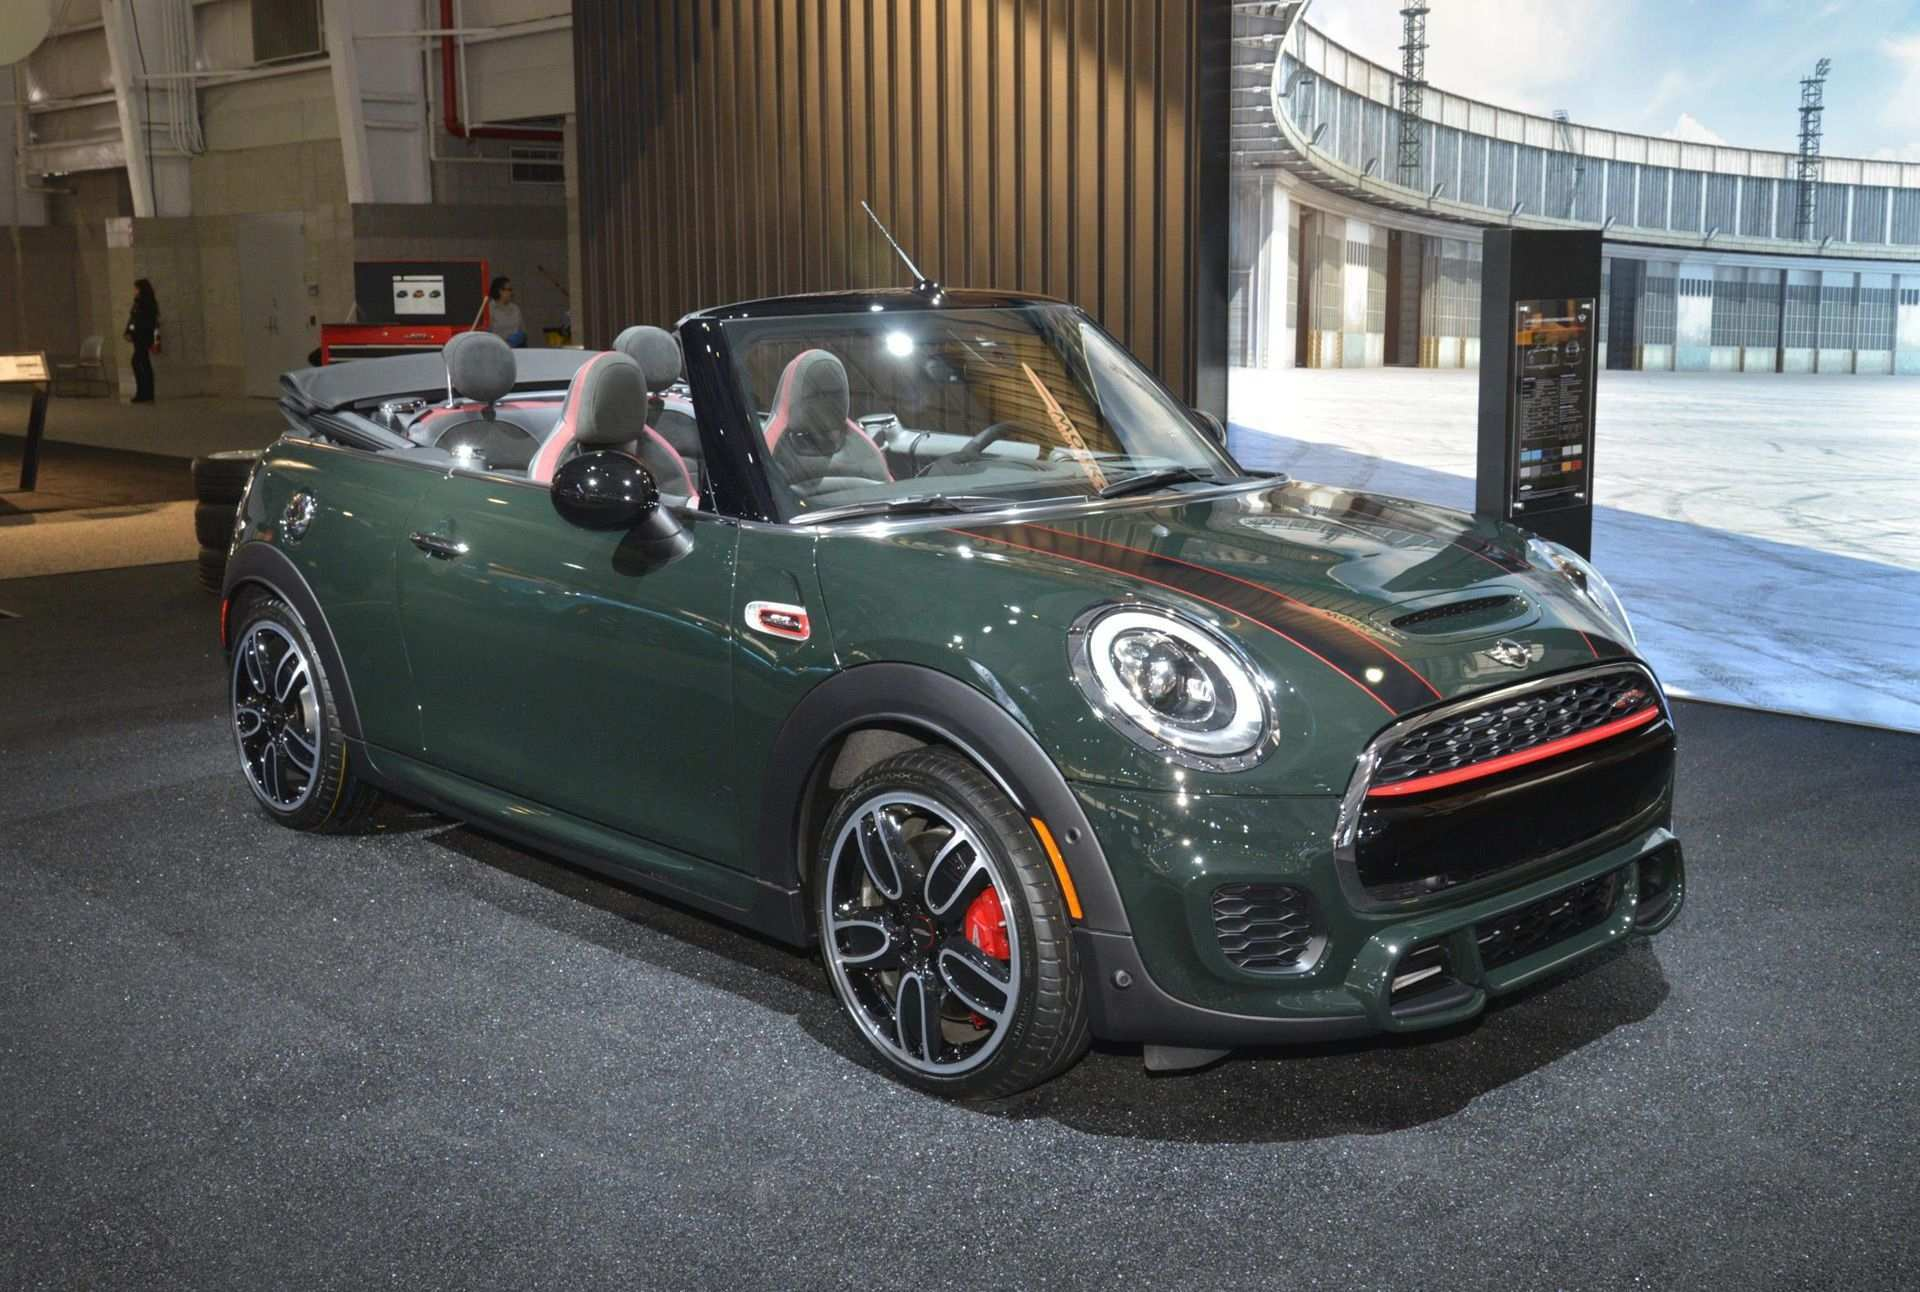 91 All New 2020 Mini Cooper Convertible S Style with 2020 Mini Cooper Convertible S